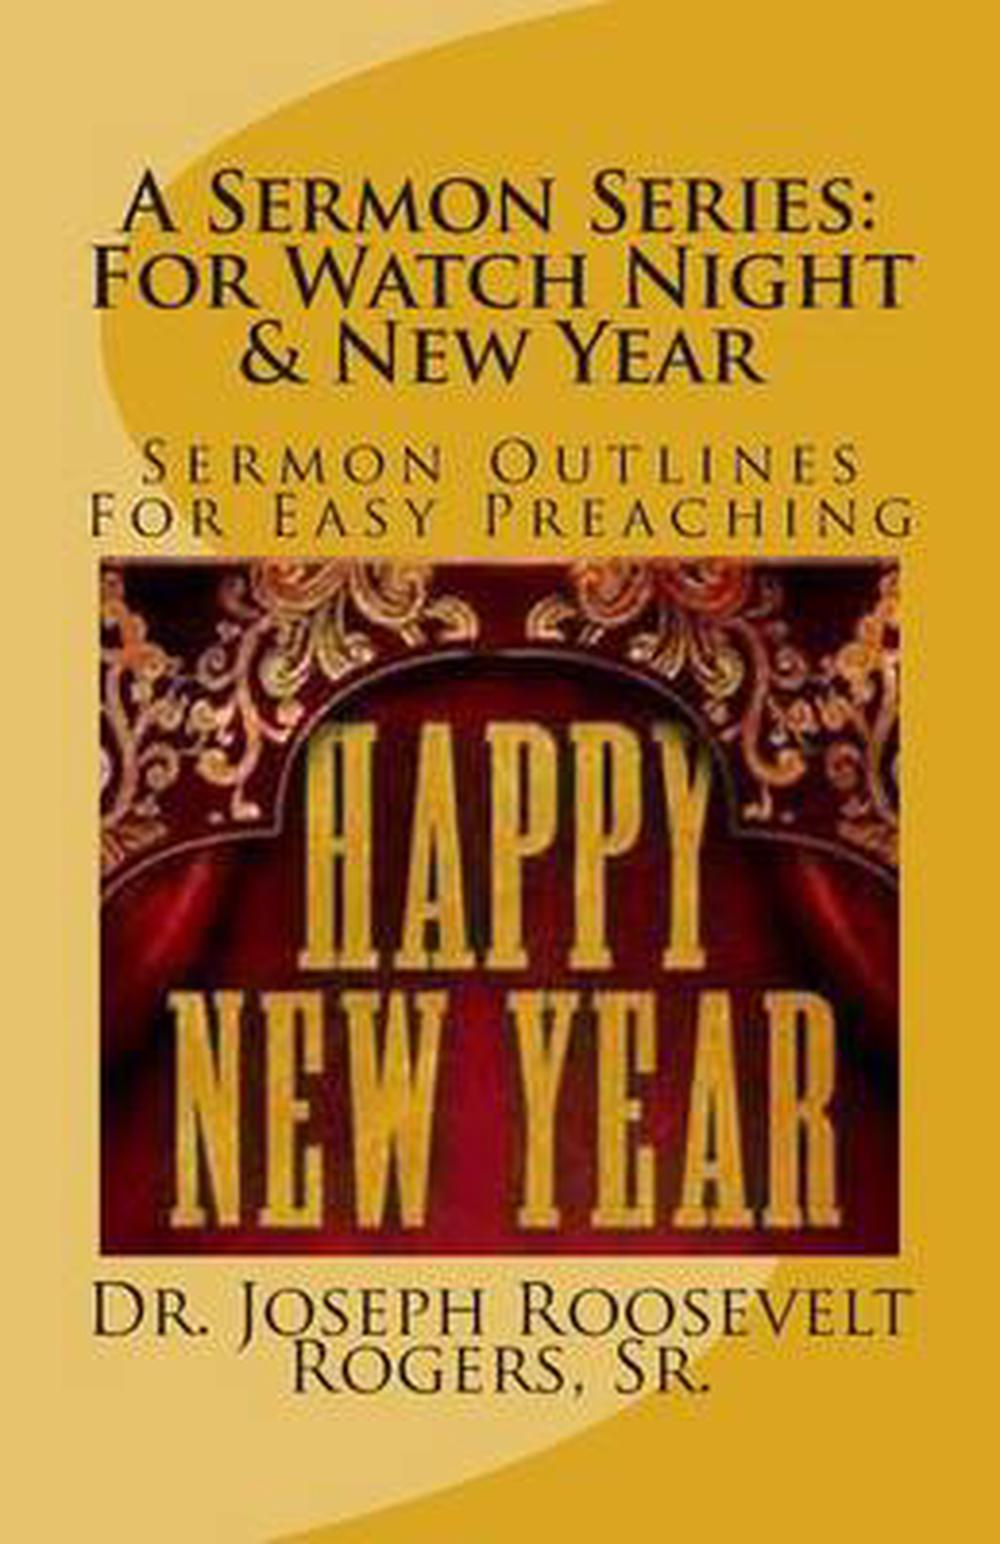 Details about A Sermon Series: For Watch Night & New Year: Sermon Outlines  for Easy Preaching